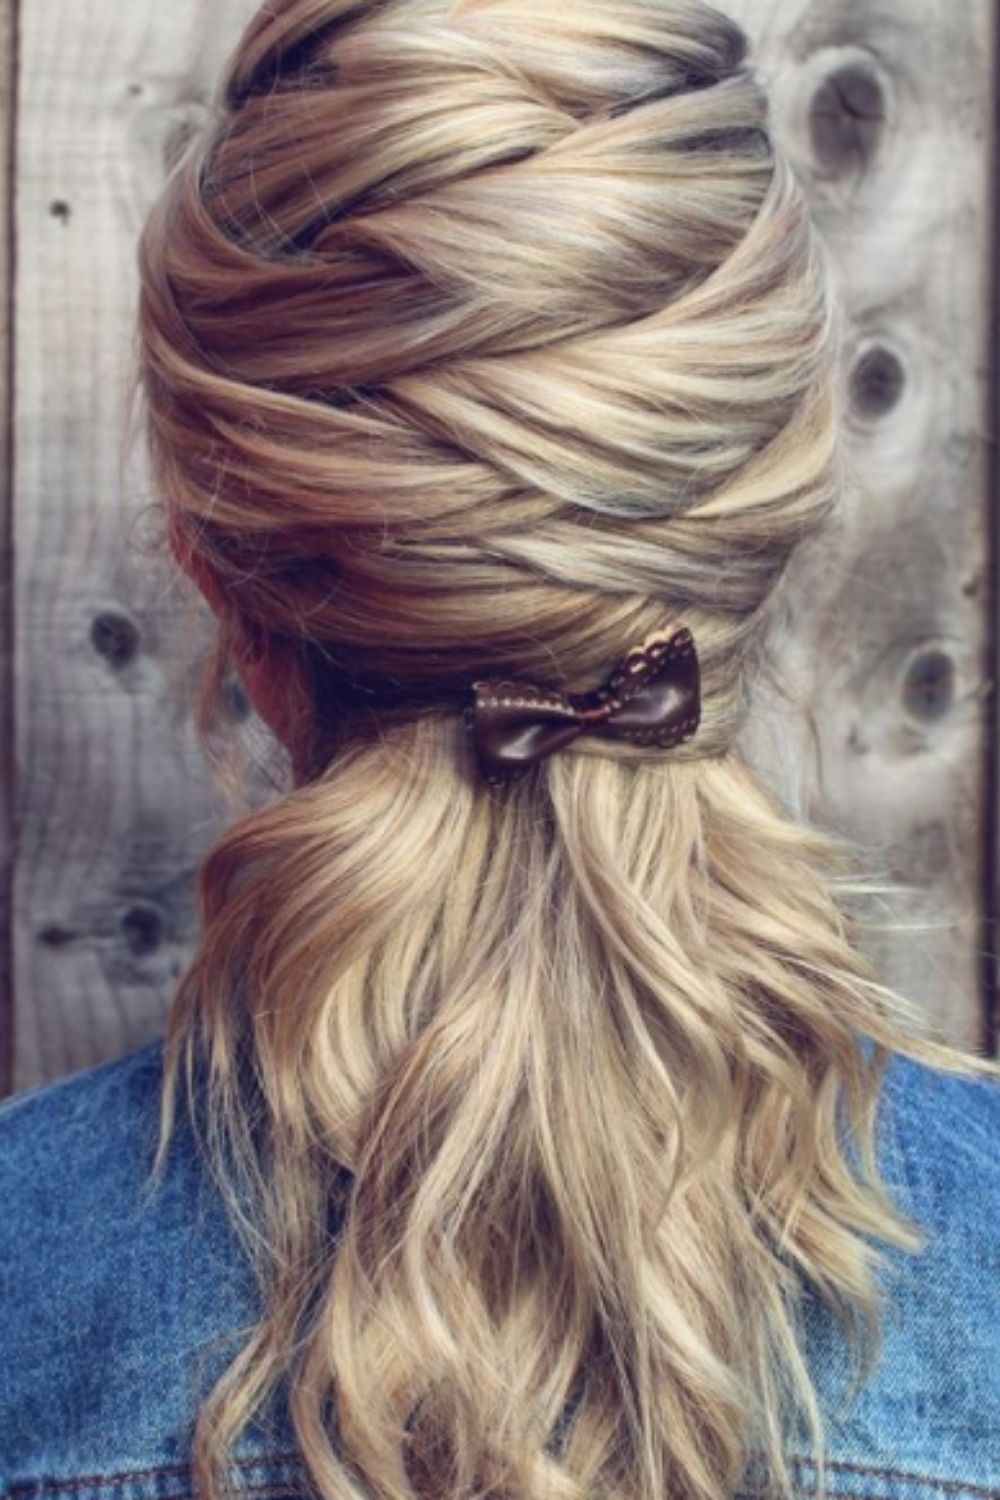 How to do homecoming hairstyles half up half down?